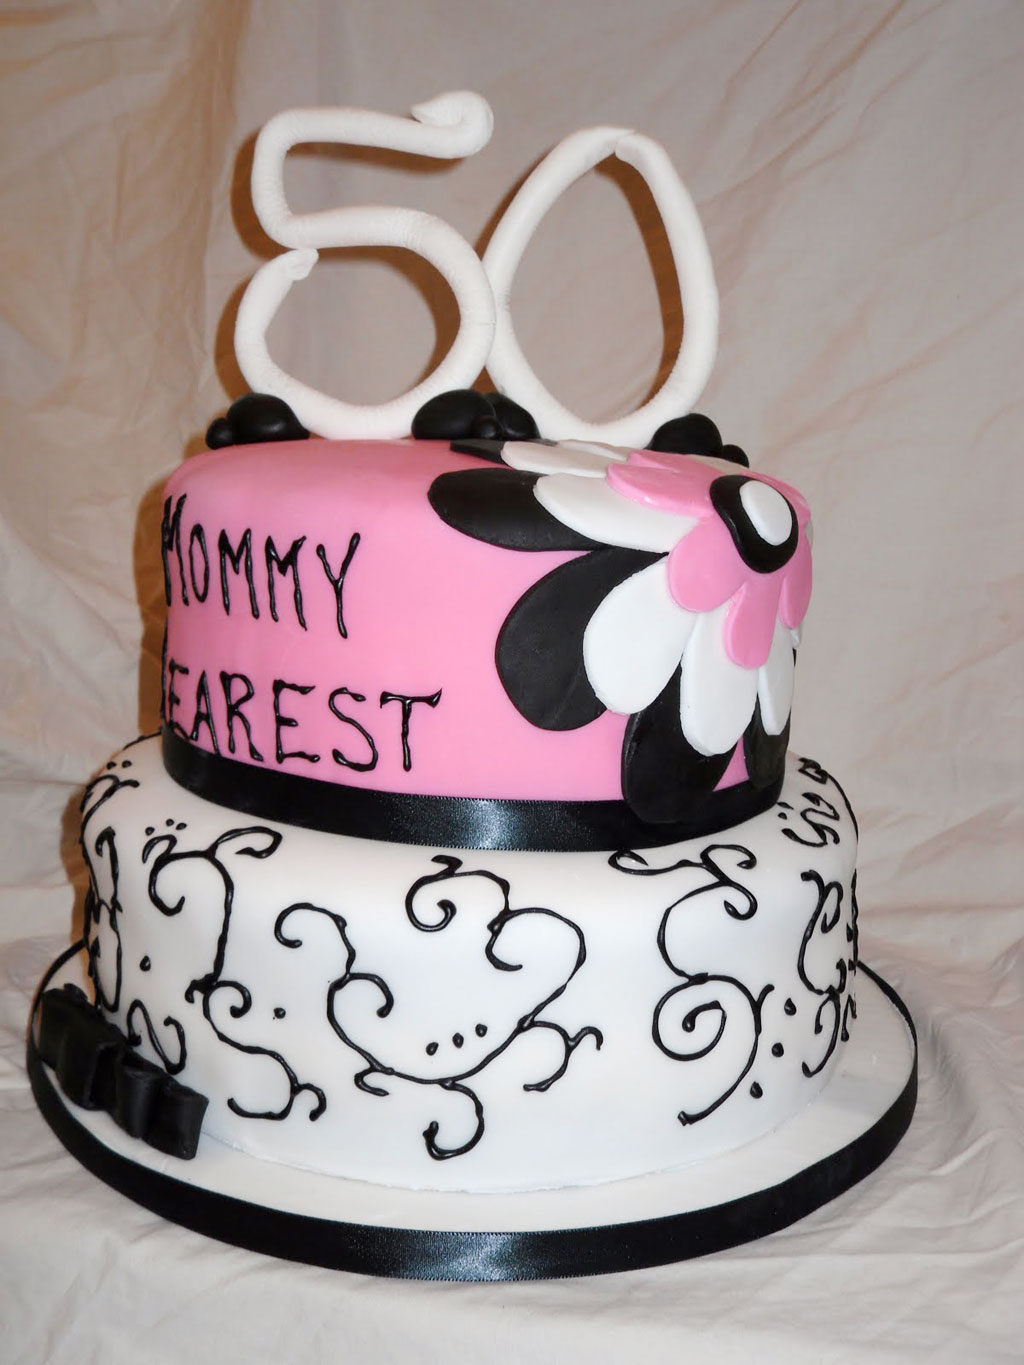 Easy 50th birthday cake ideas birthday cake cake ideas for 50th birthday cake decoration ideas